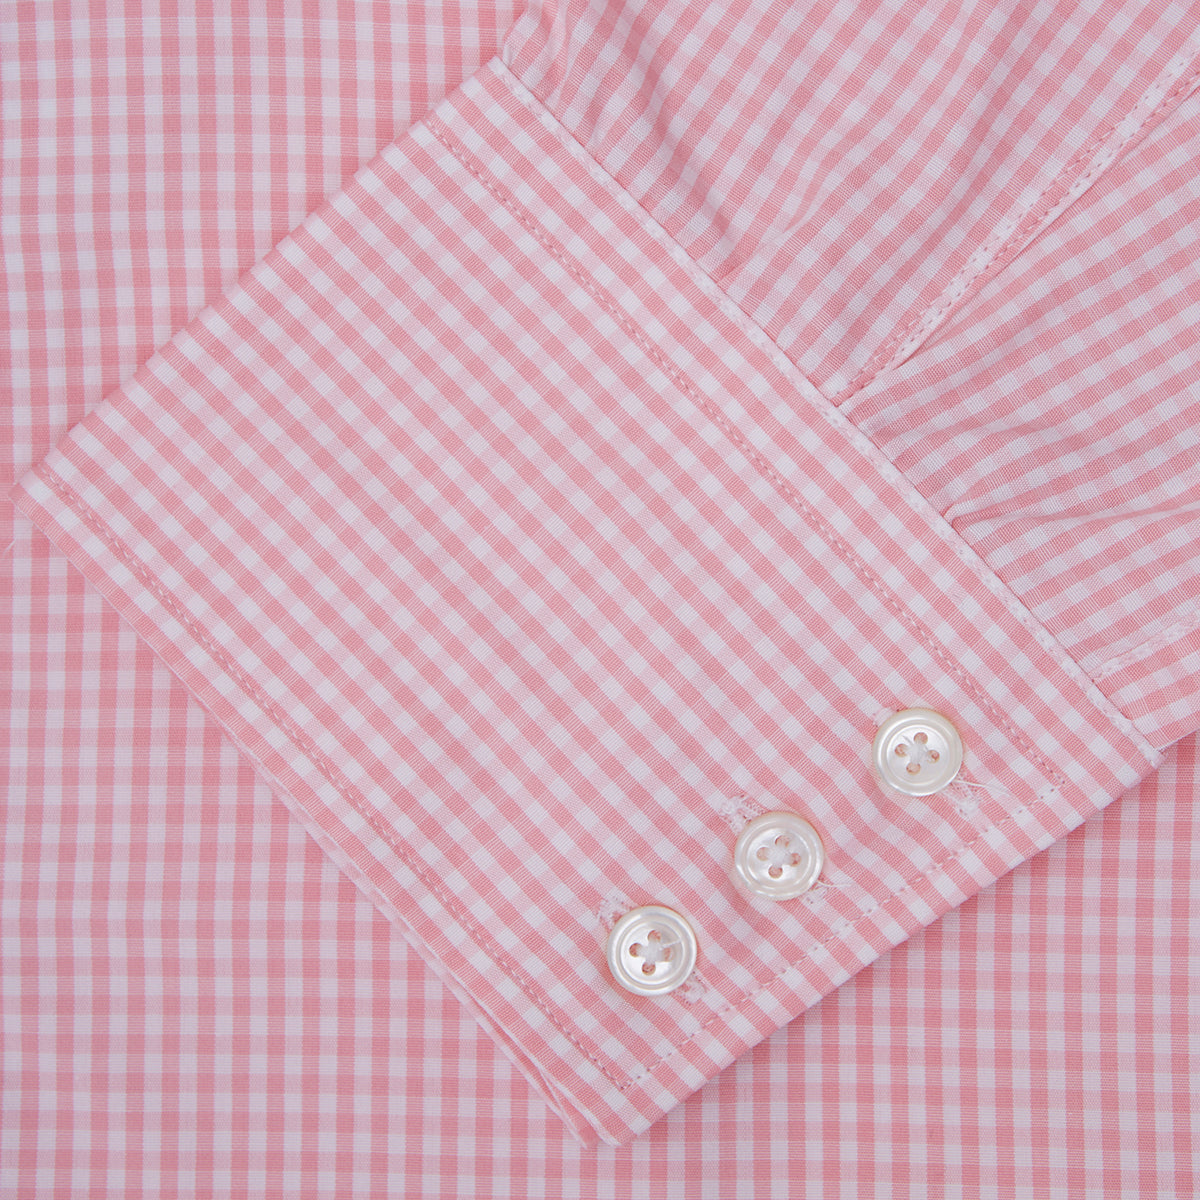 Light Pink Gingham Check Shirt with T&A Collar and 3-Button Cuffs